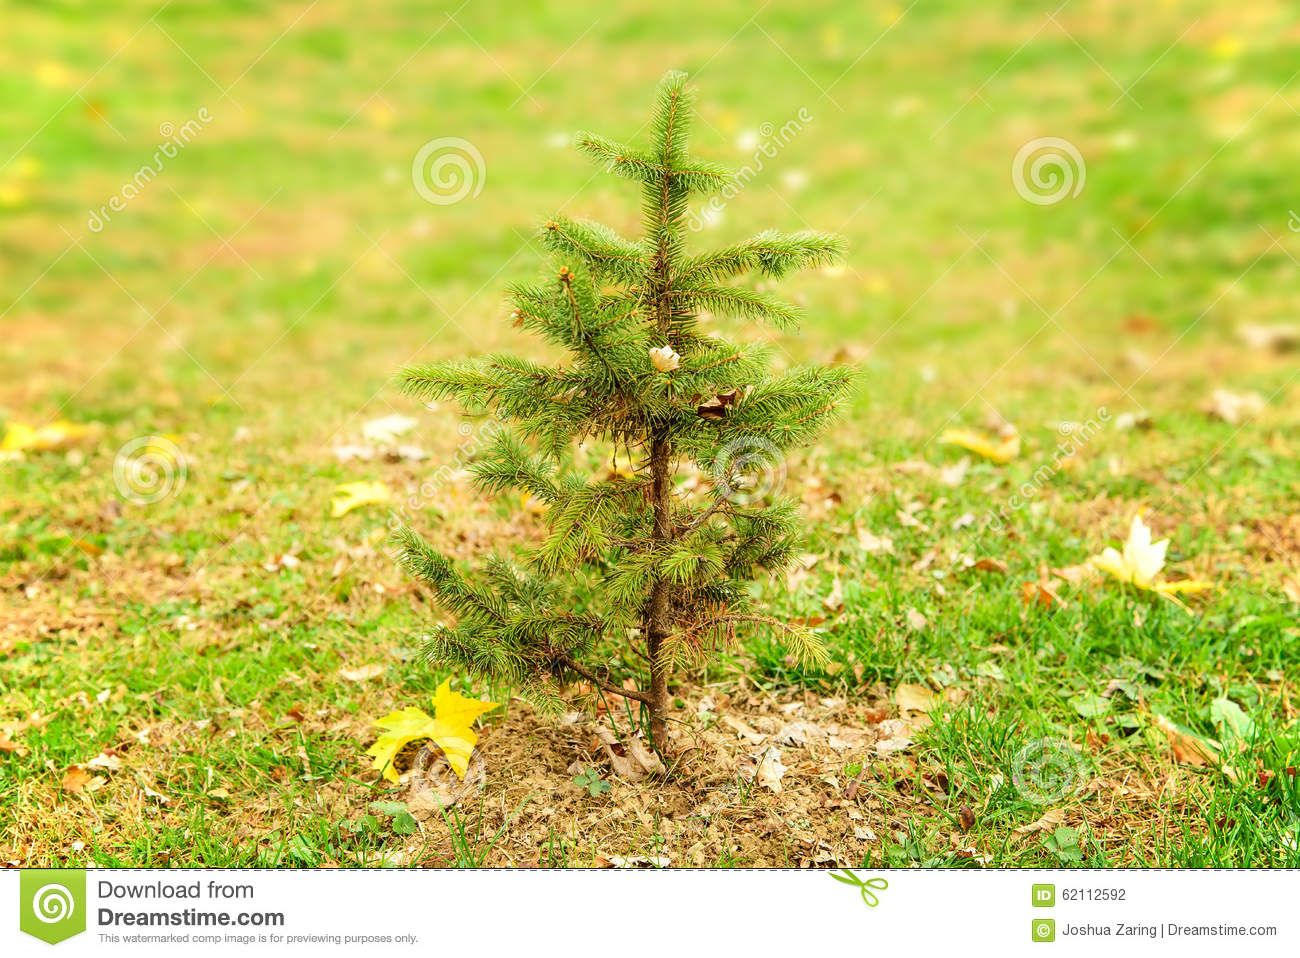 Small Pine Tree Alone In Field Download From Over 45 Million